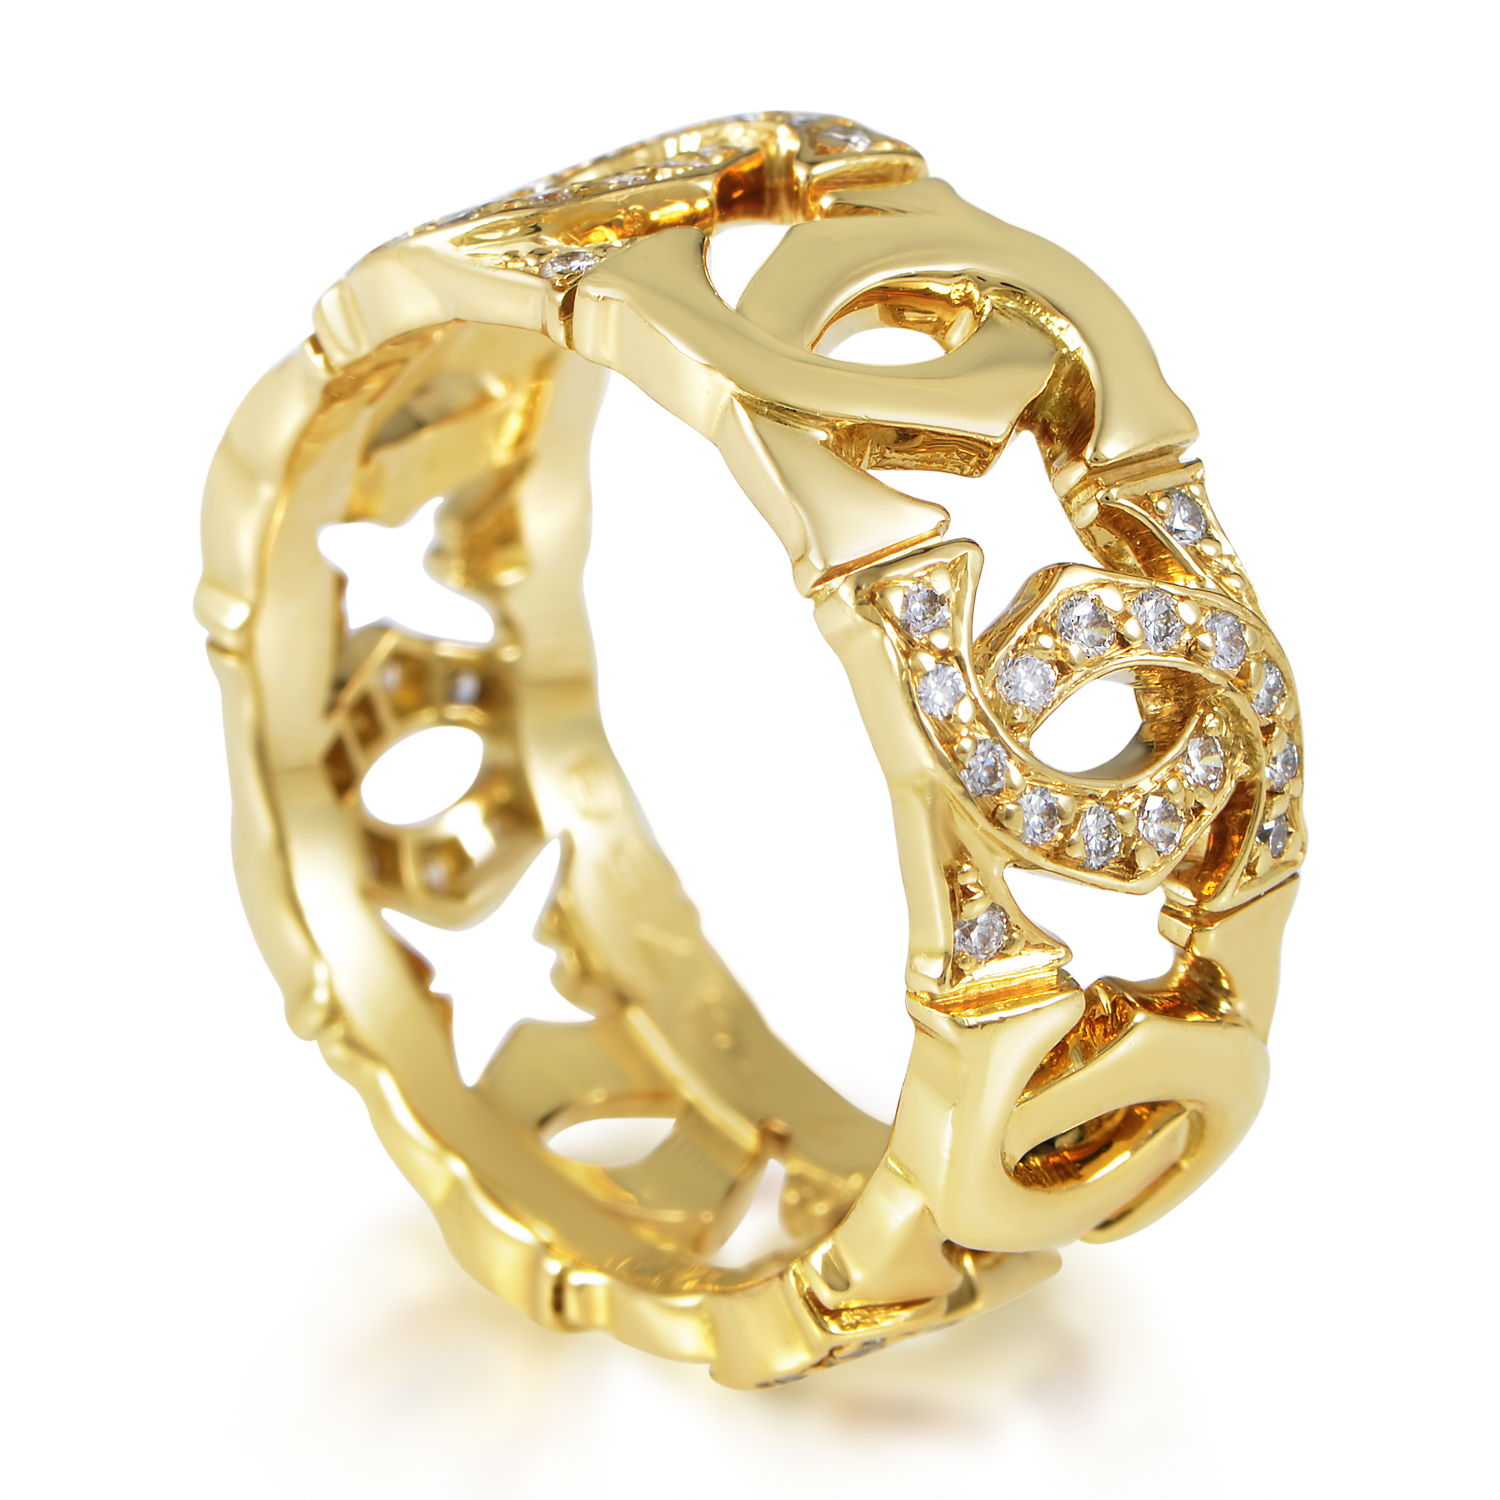 Cartier C de Cartier 18K Yellow Gold Diamond Band Ring